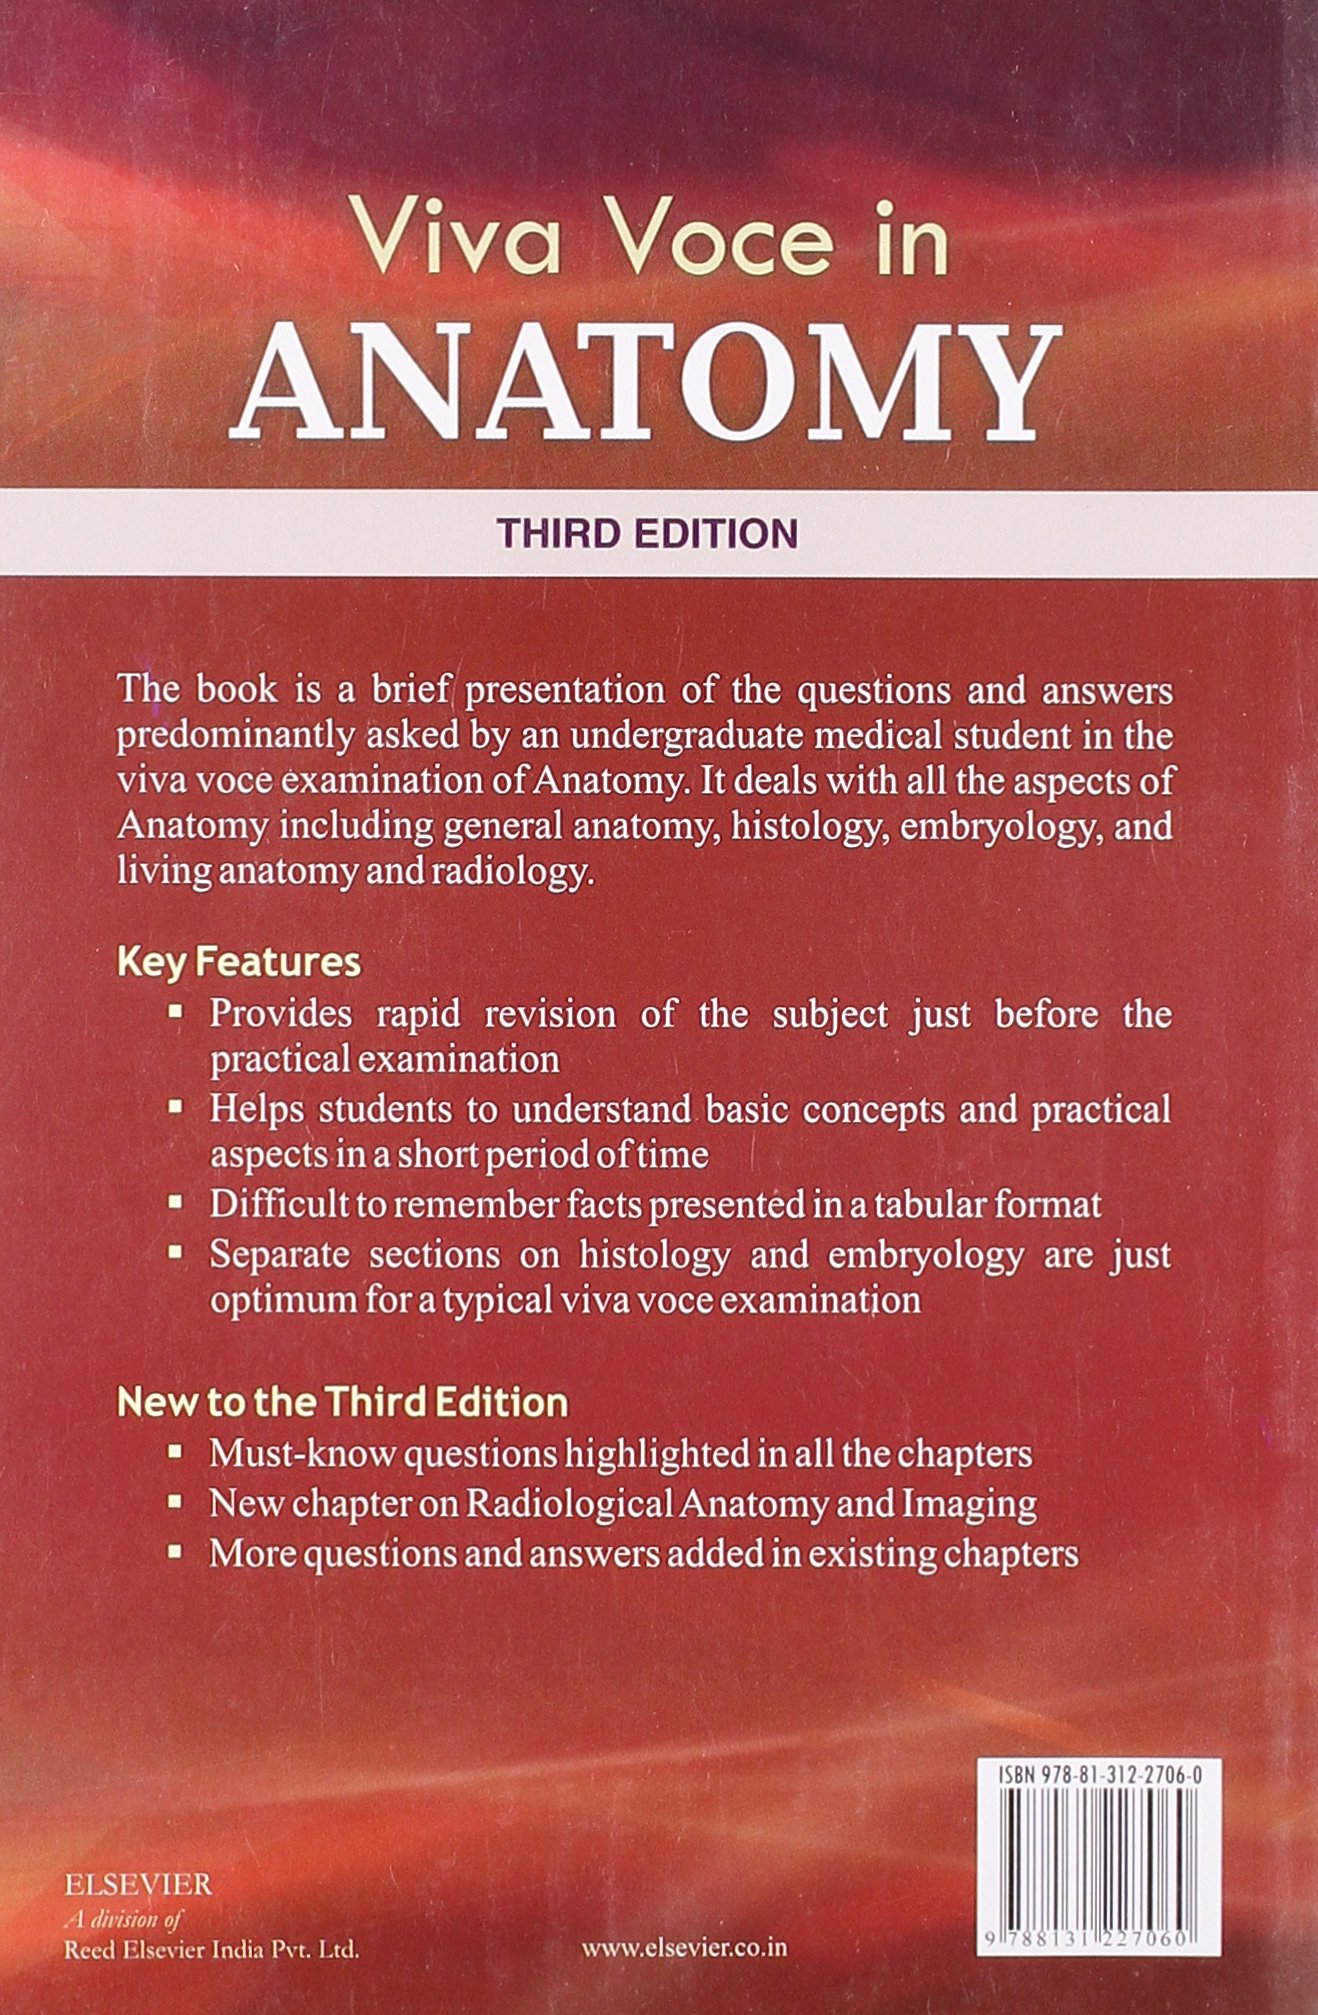 Viva Voce in Anatomy: Gangane: 9788131227060: Amazon.com: Books